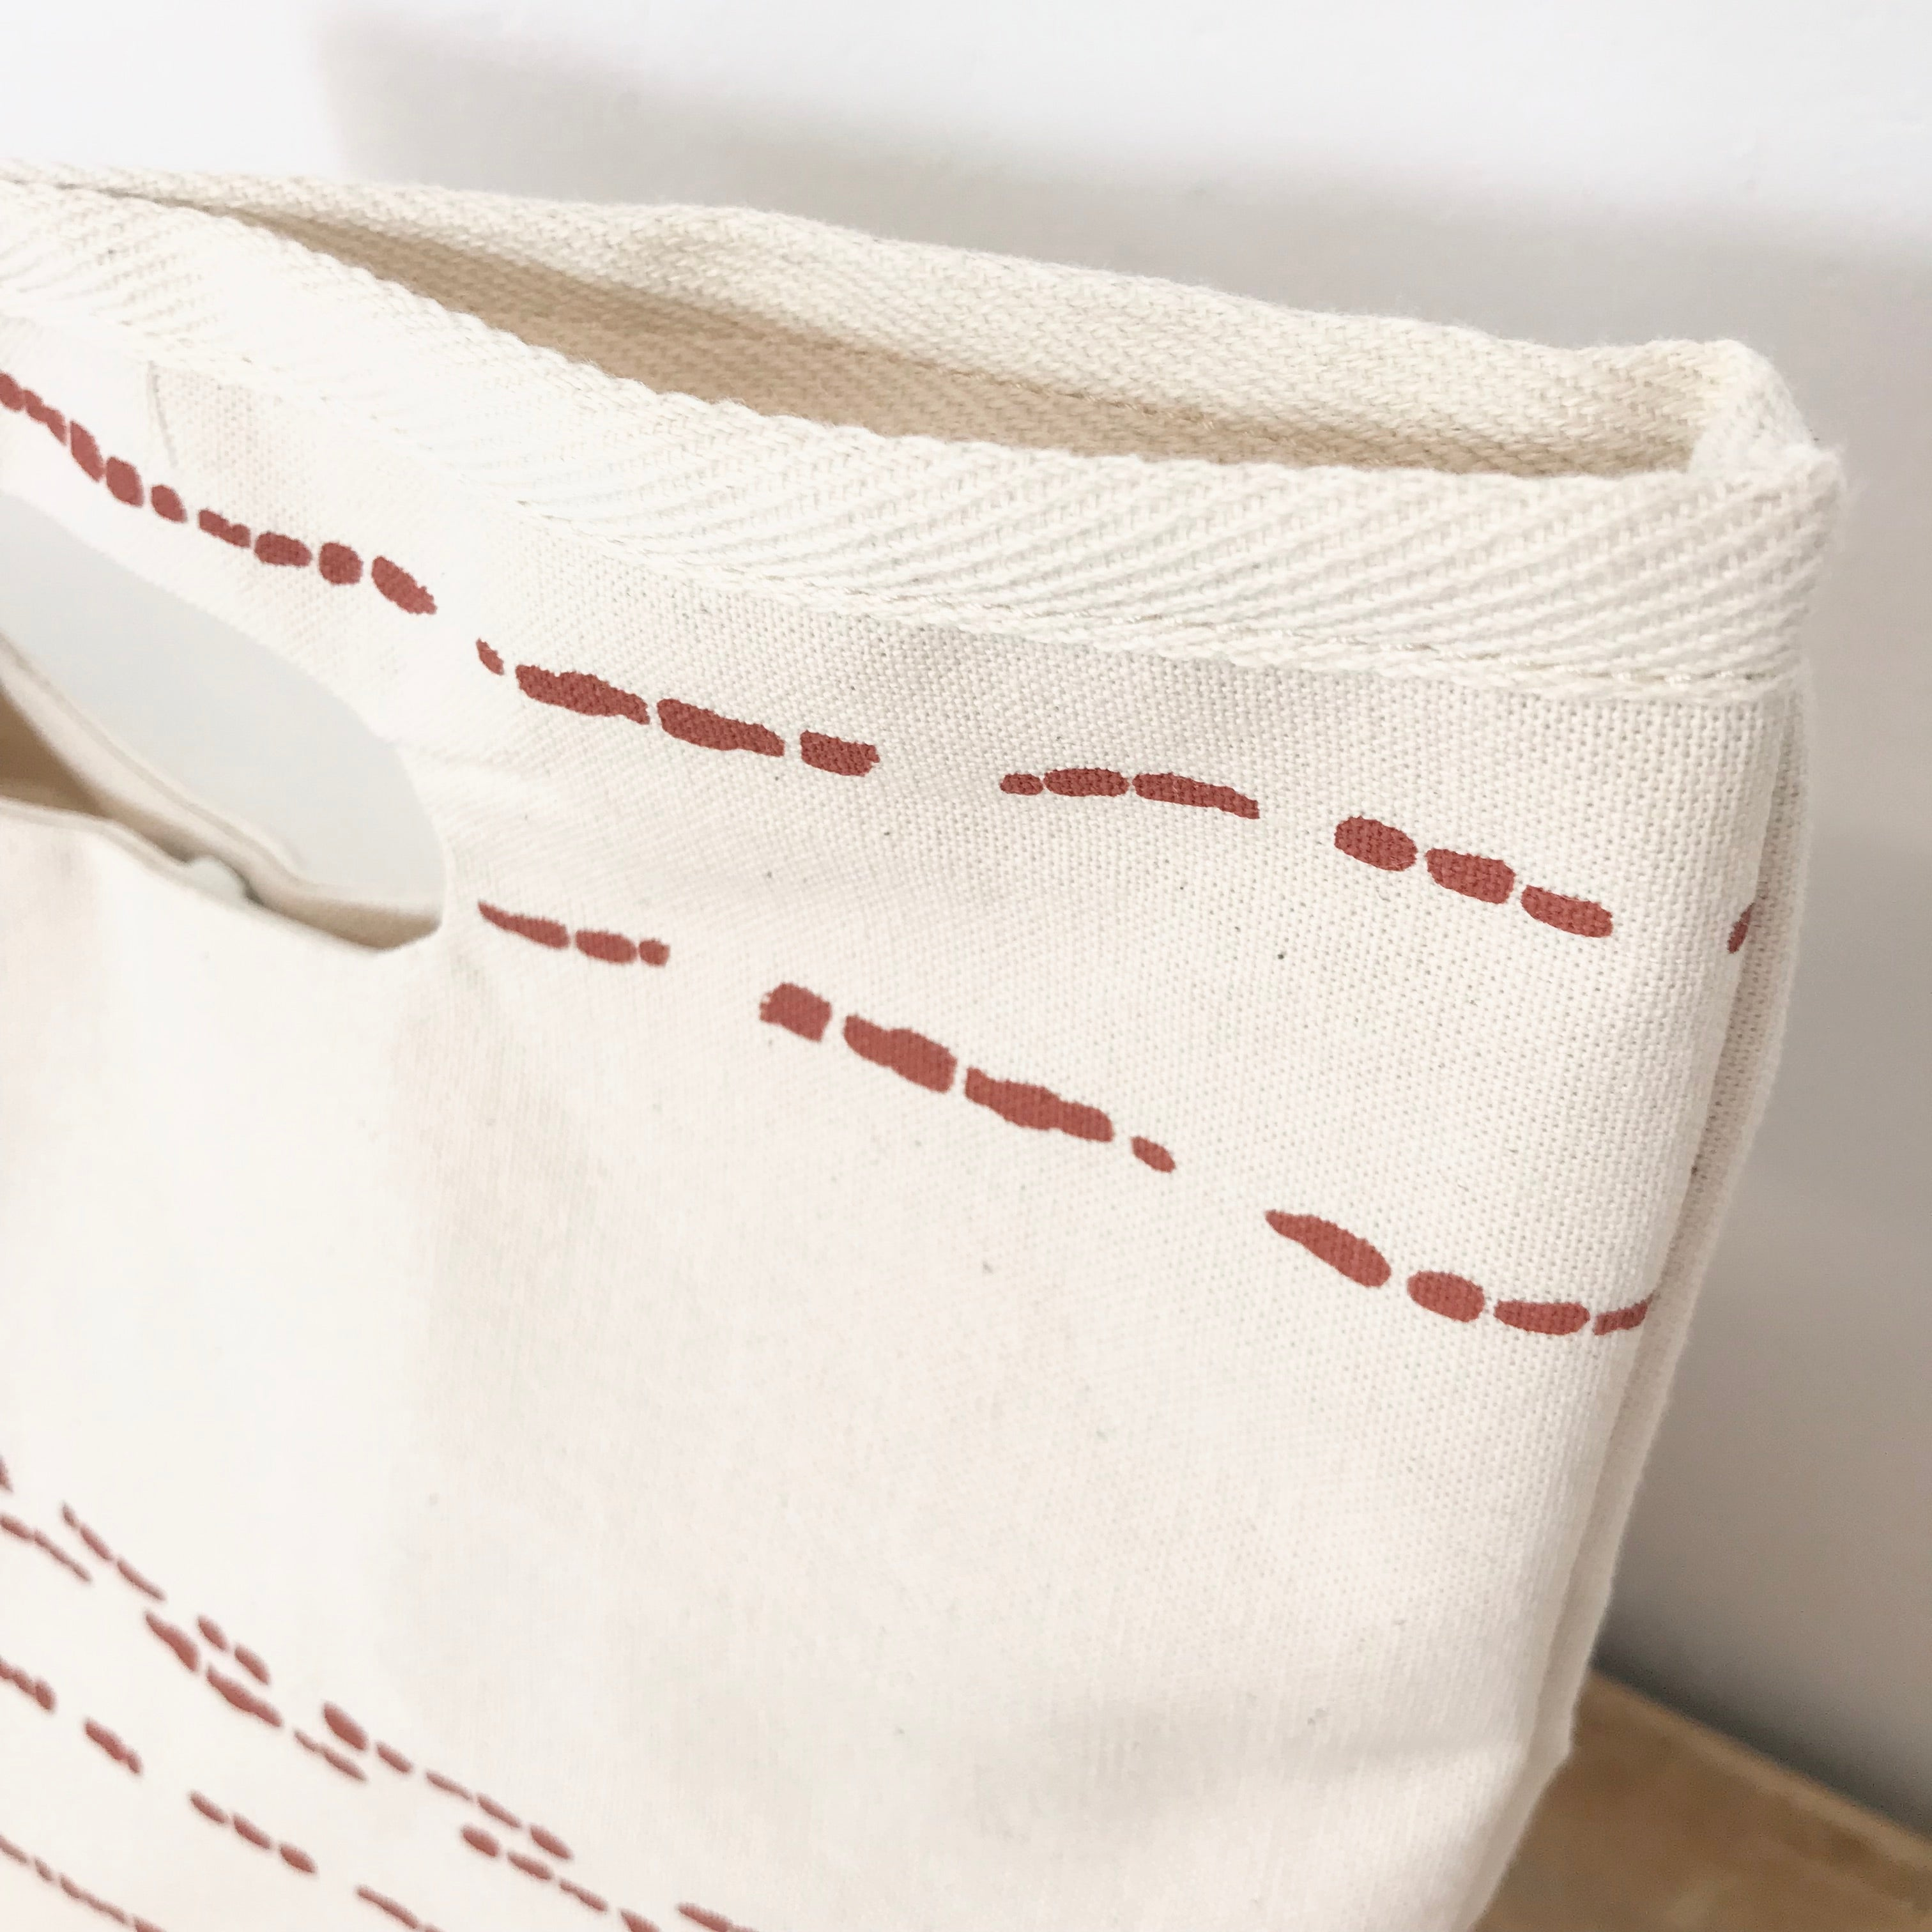 CLAY RIVER LUNCH BAG